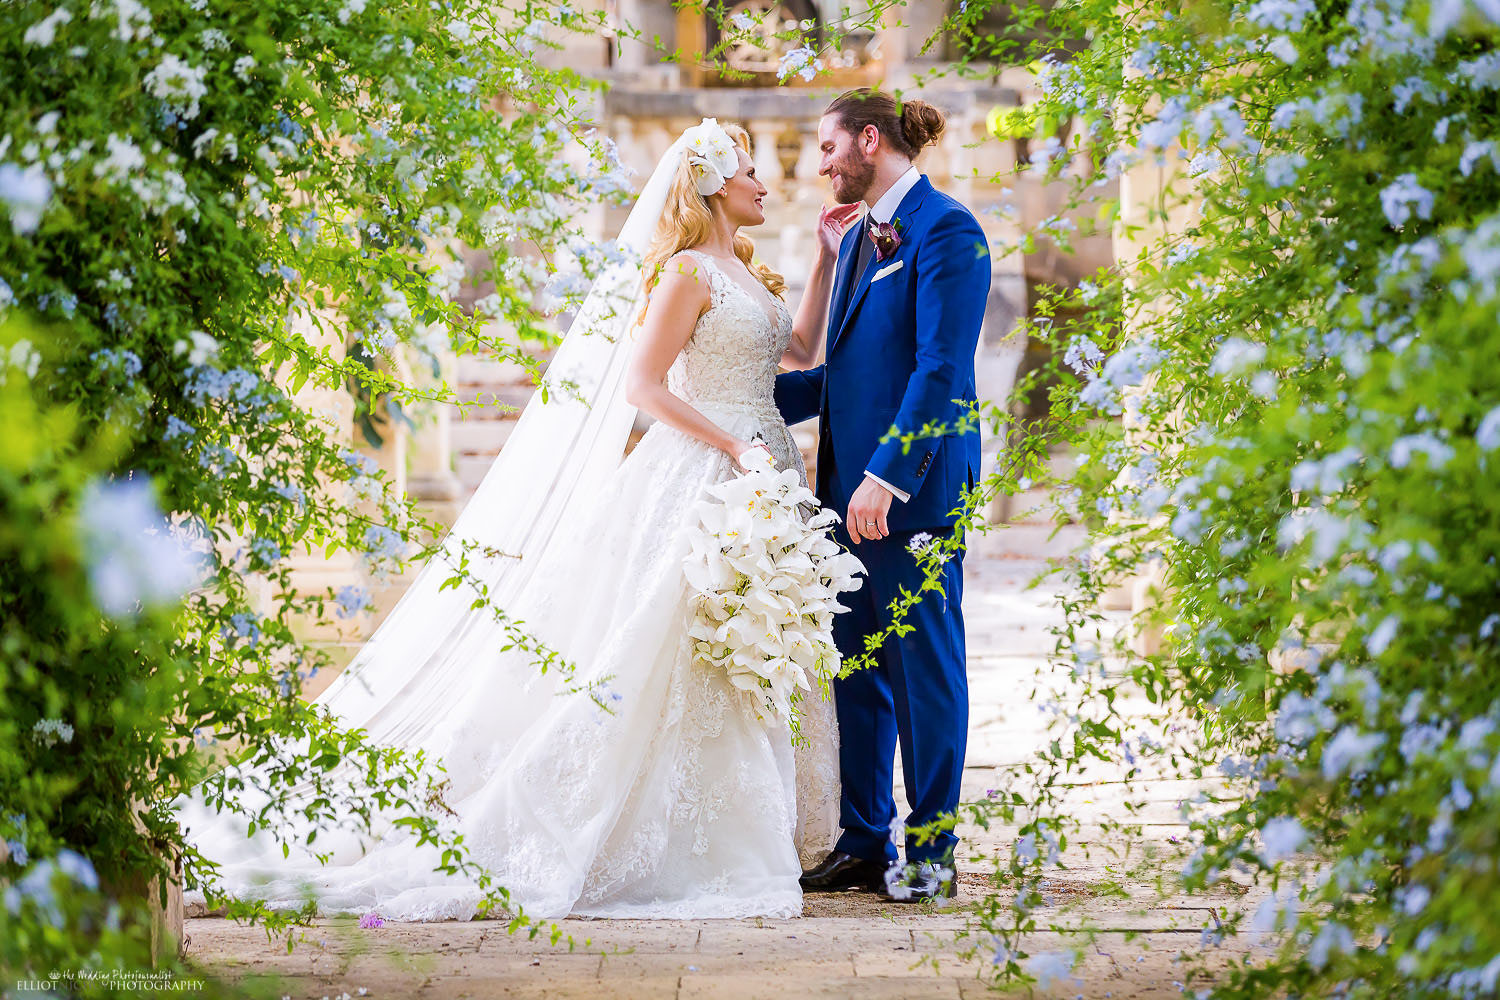 Portrait of the Bride and Groom in the beautiful gardens of their wedding venue. Photo by North East wedding photographer Elliot Nichol.